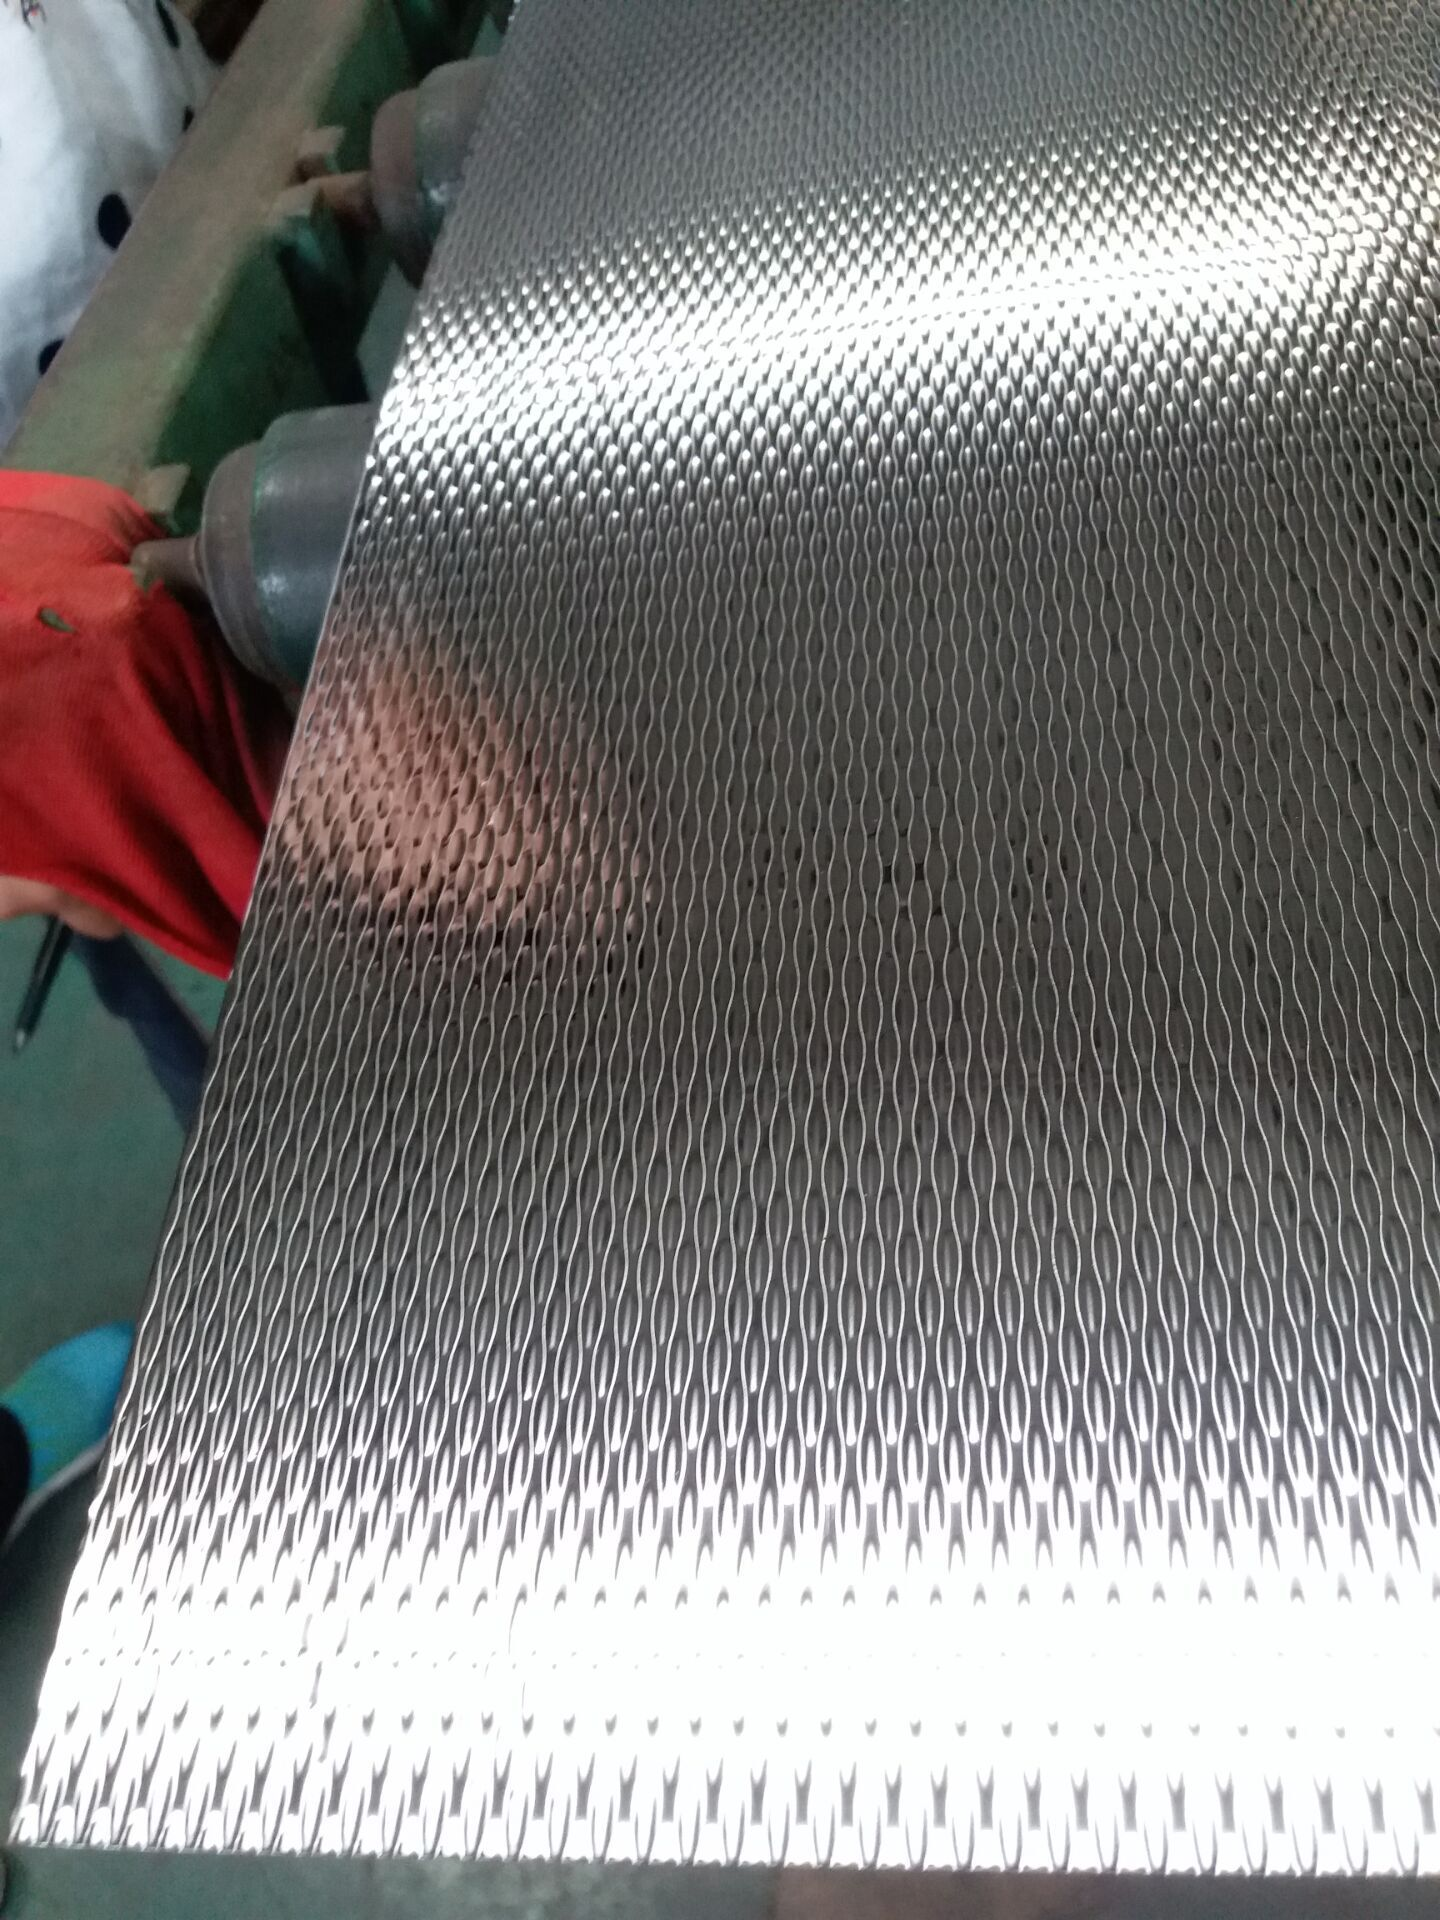 No 8 Finish 5wl Stainless Steel Sheet Stainless Steel Panels Stainless Steel Sheet Stainless Steel Sheet Metal